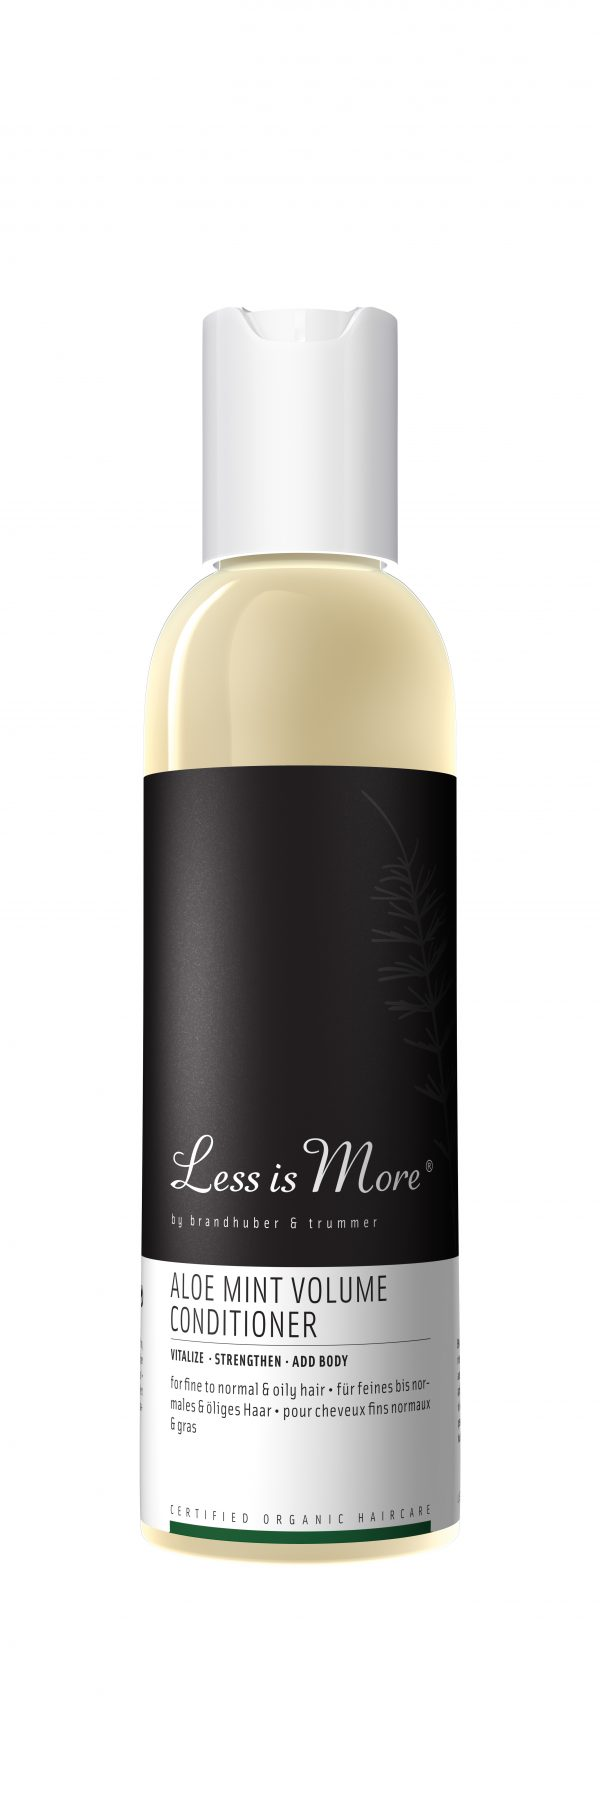 Less is More Aloe Mint Volumen Conditioner